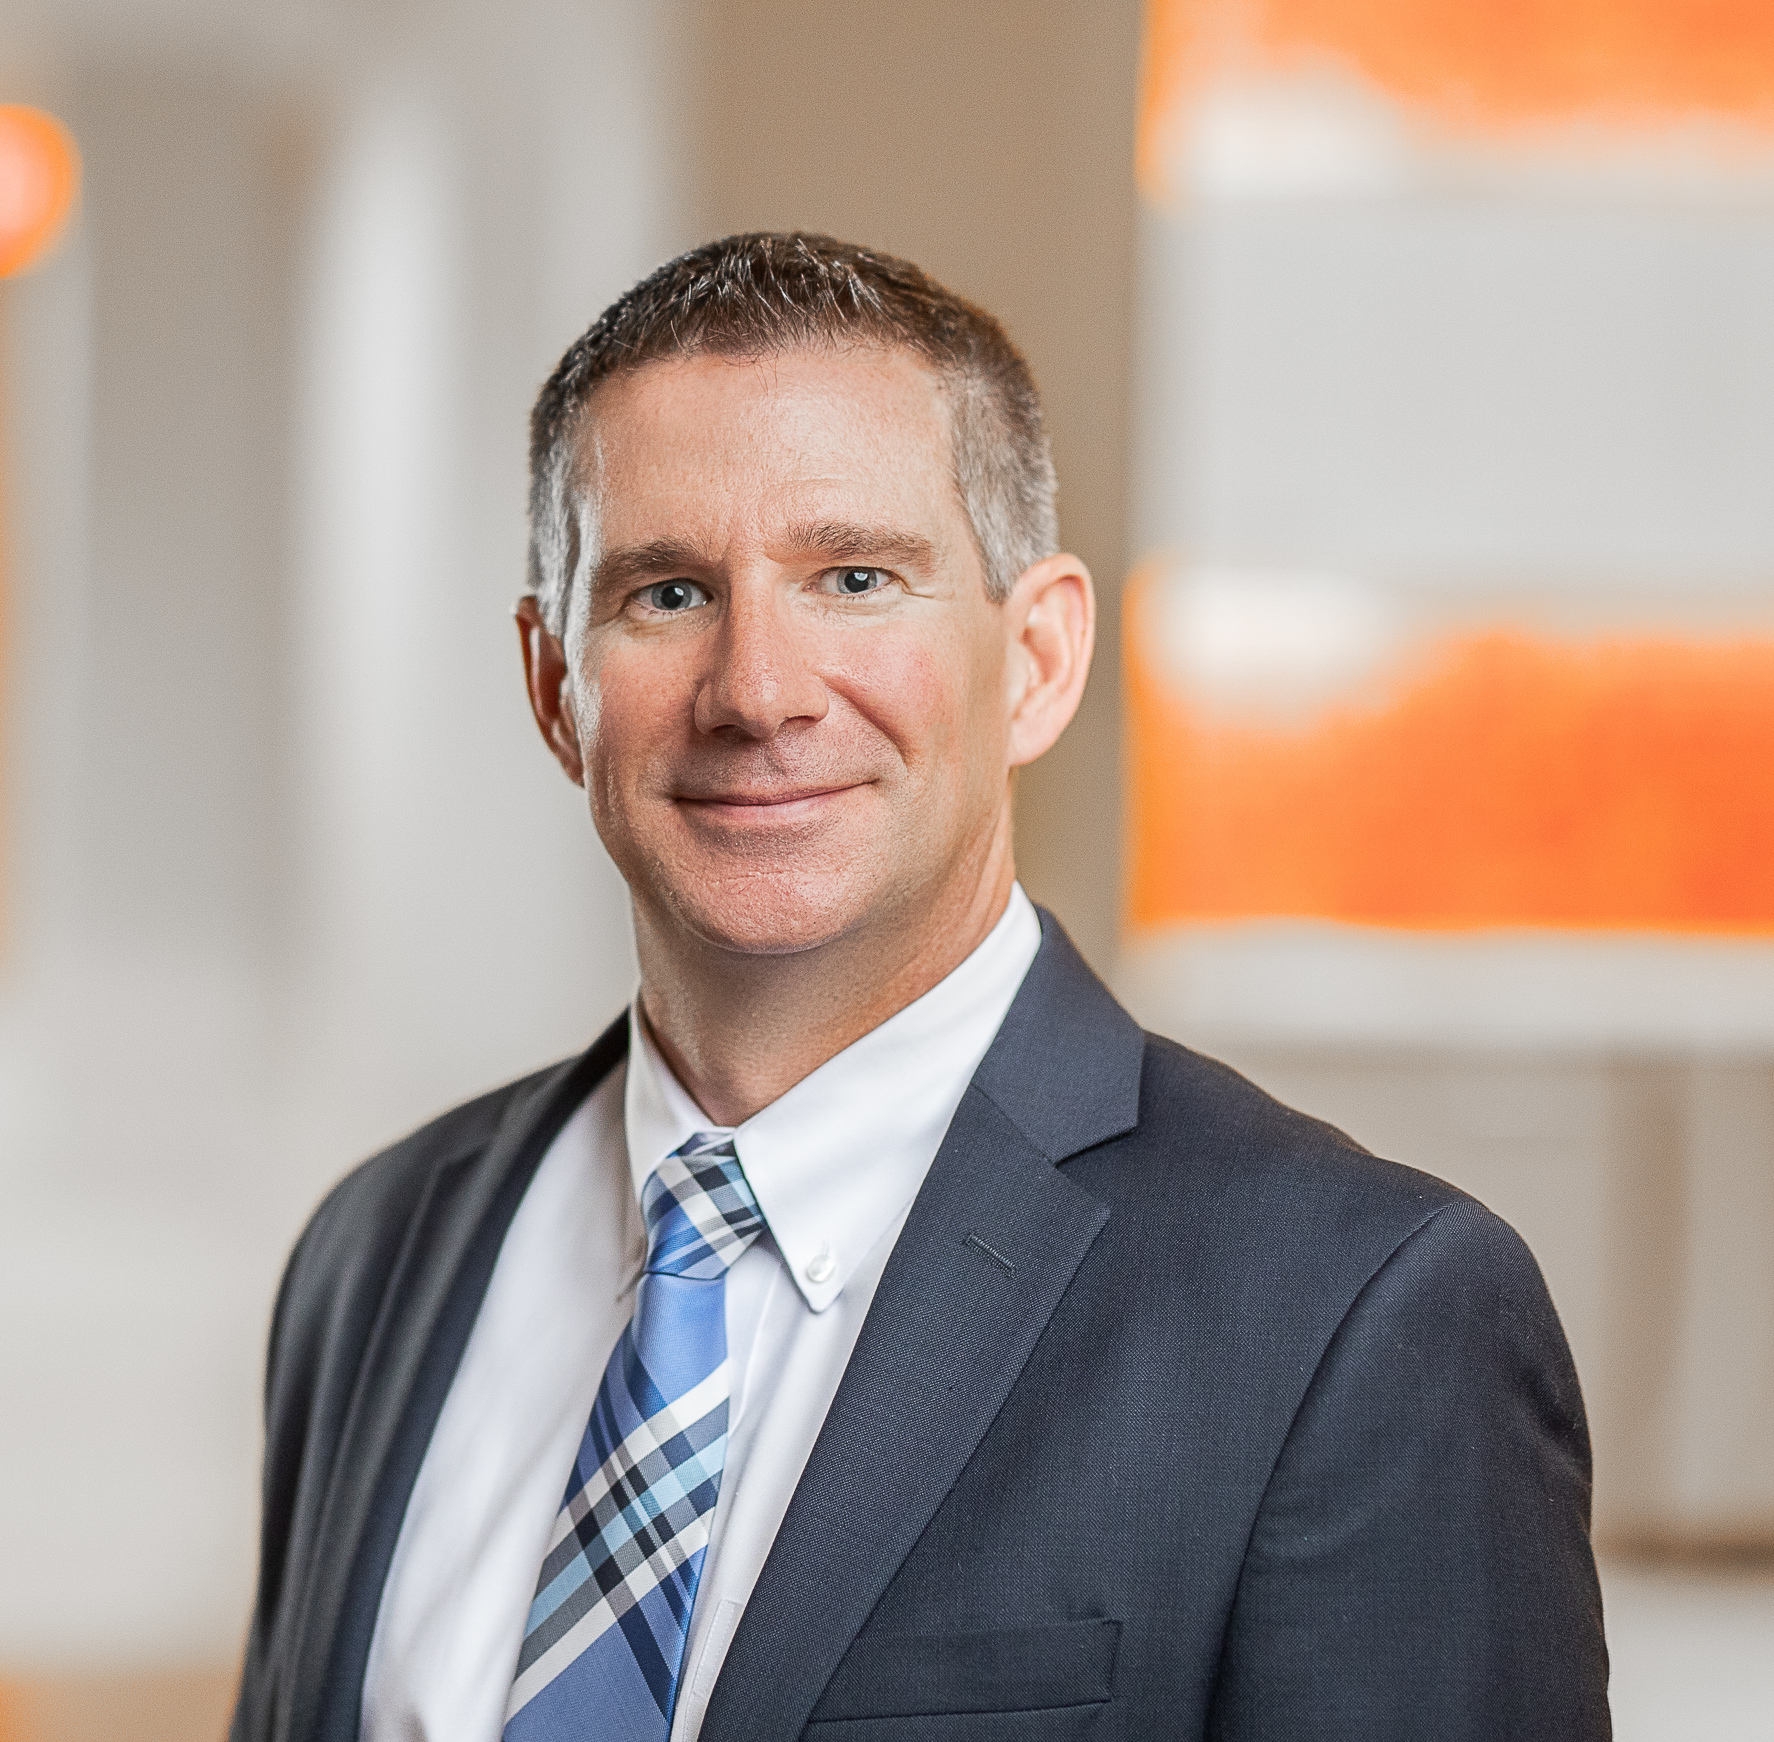 Todd Goodrich, V.P. of Business Development for PARIC Construction in St. Louis.